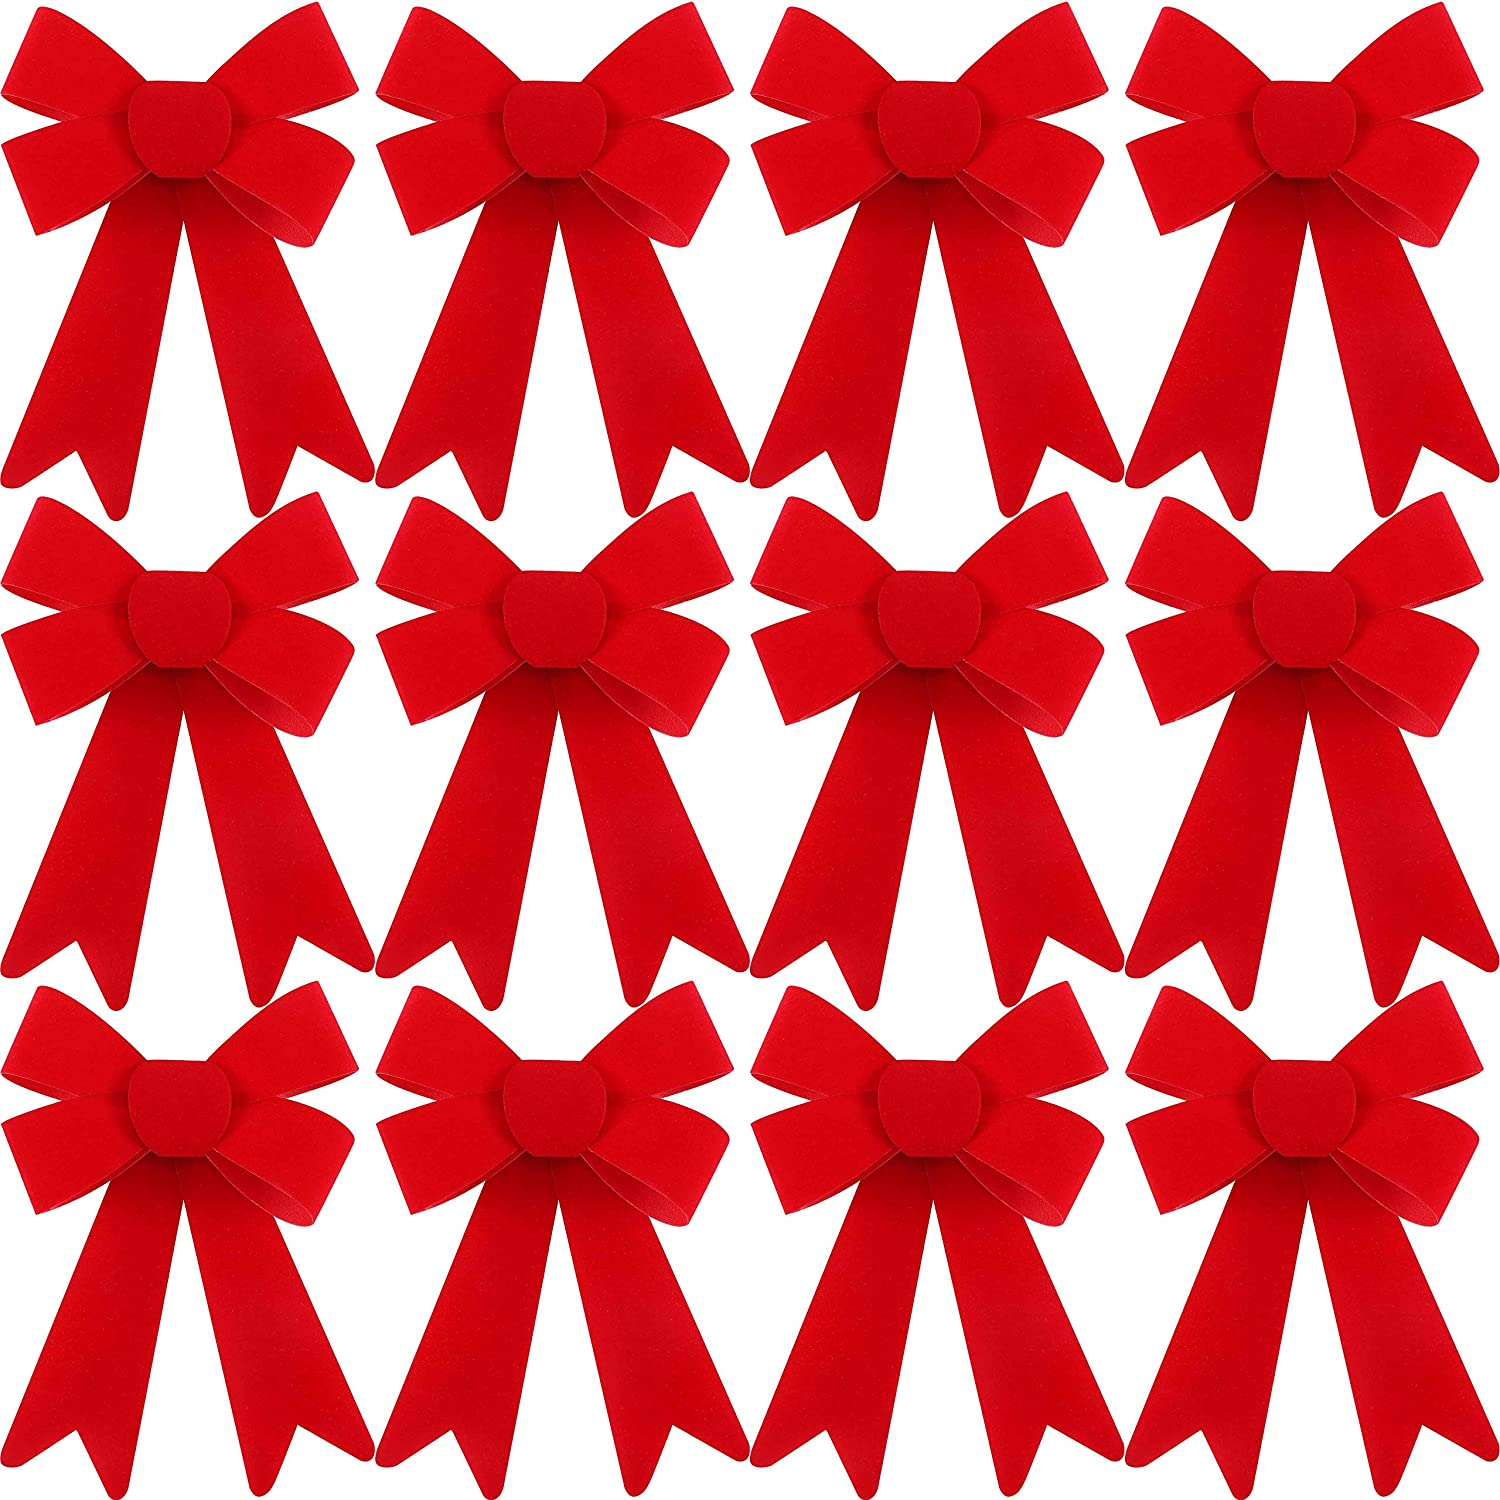 Syhood 12 Pieces Christmas PVC Plastic Bows Red Holiday Decorative Bows for Christmas Party Supplies, 5 x 7 Inch